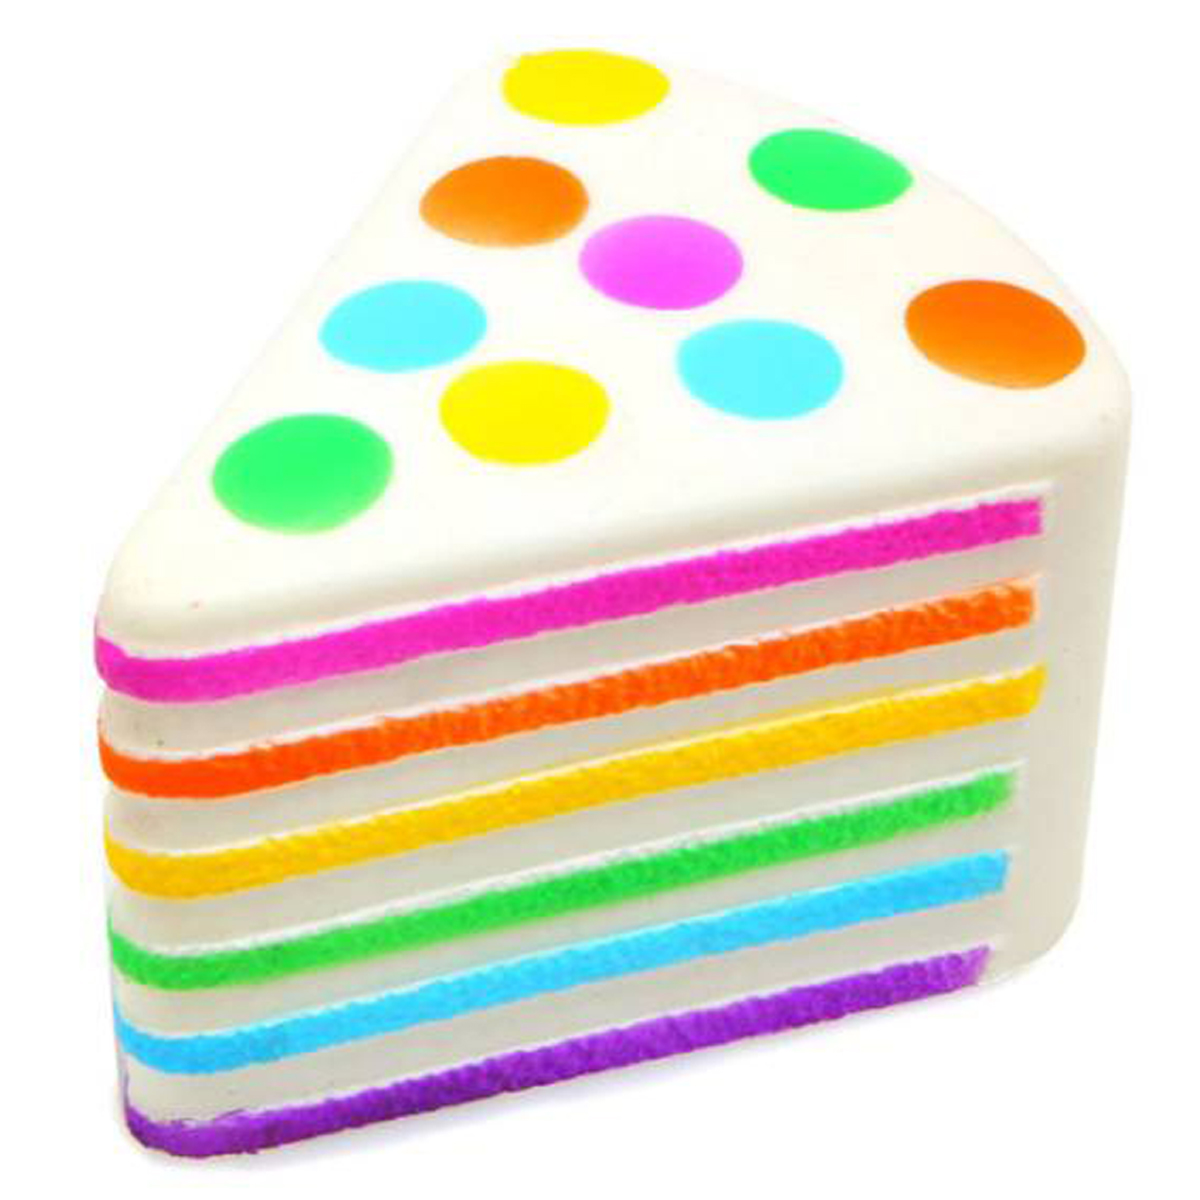 Anti-stress 3D squichy \'Cake Arc en Ciel\' multicolore - 95x8x65 cm - [R0544]